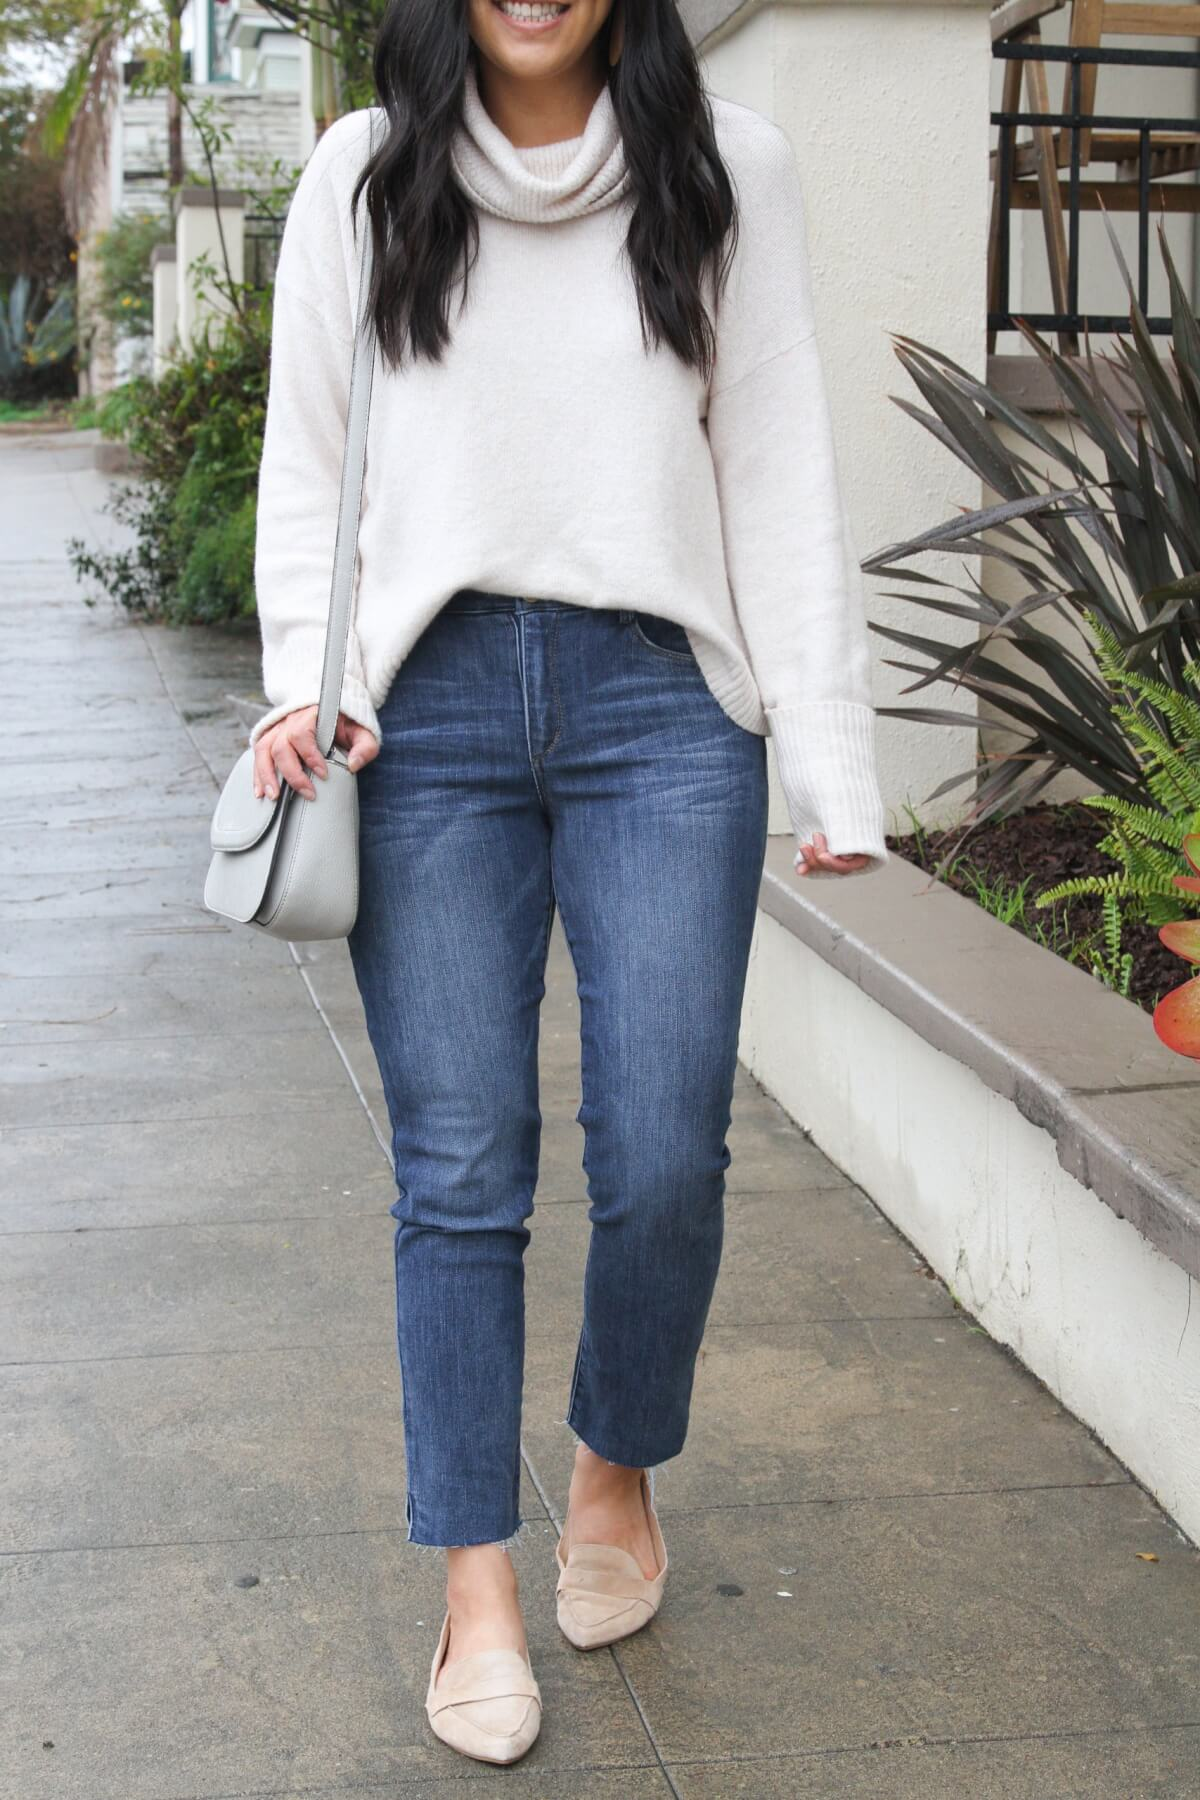 spring outfit: white turtleneck sweater + cropped straight leg jeans + neutral flats + gray purse